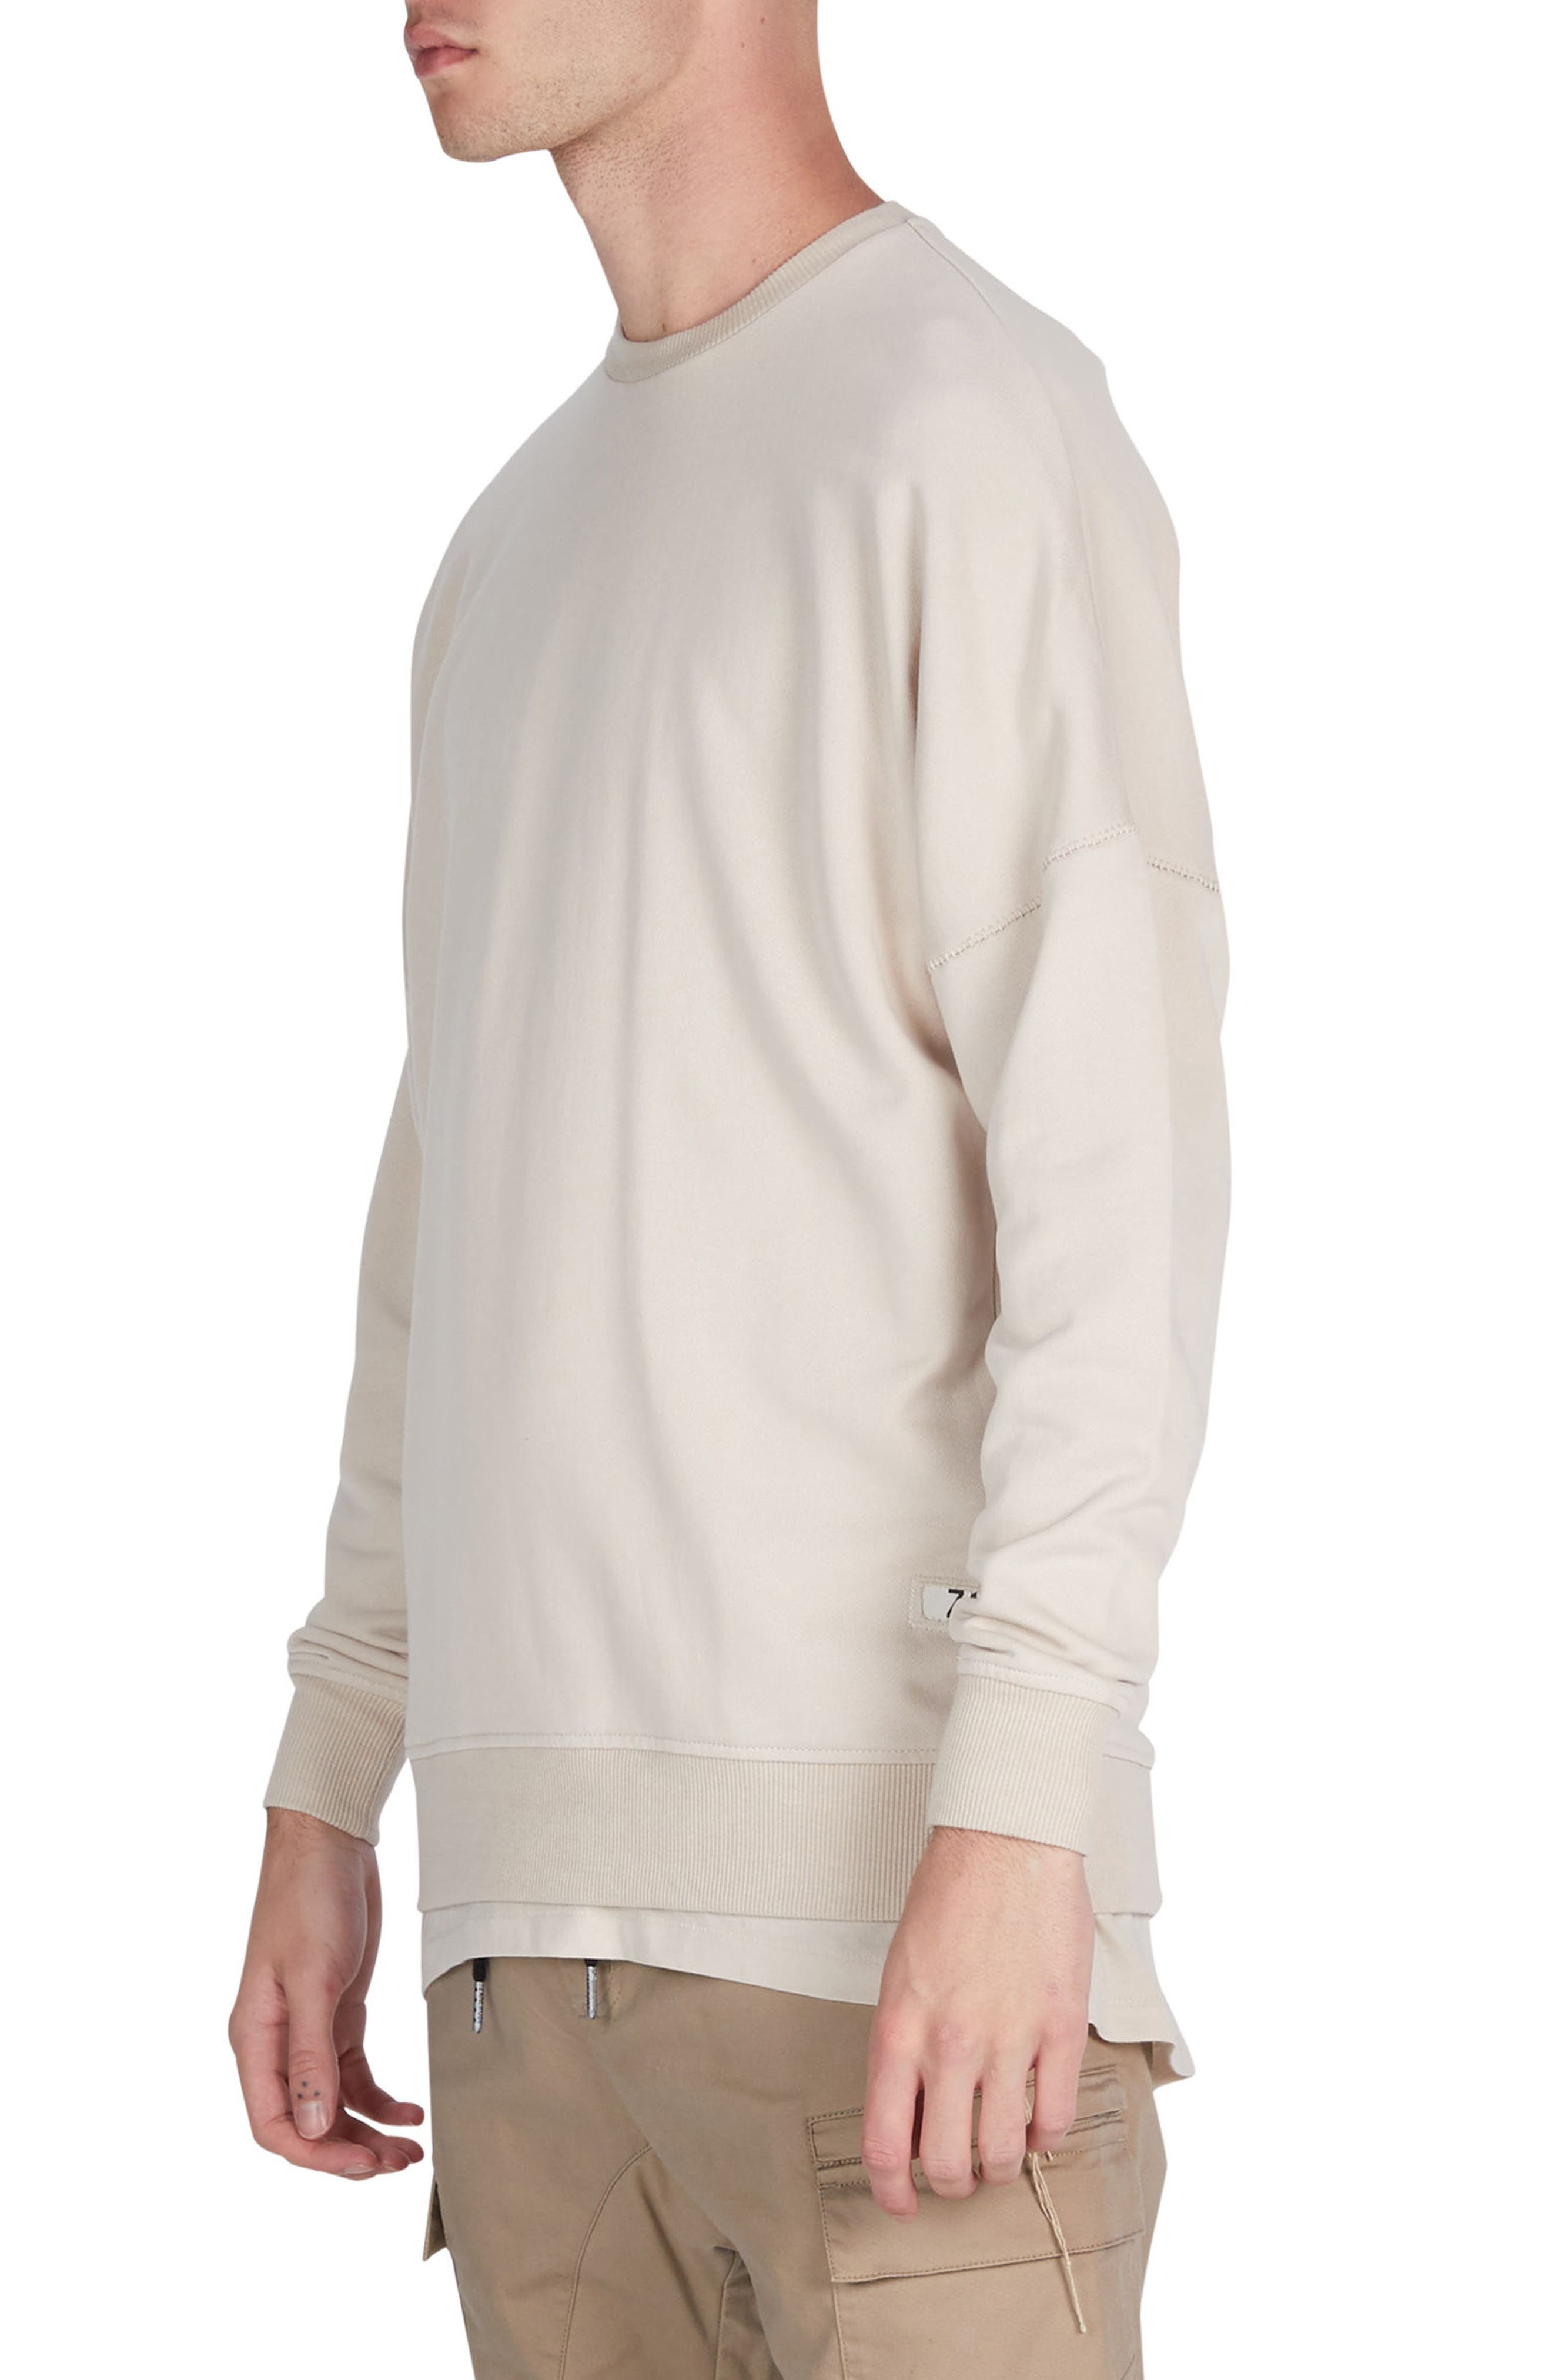 Rugger Crewneck Sweater,                             Alternate thumbnail 4, color,                             251